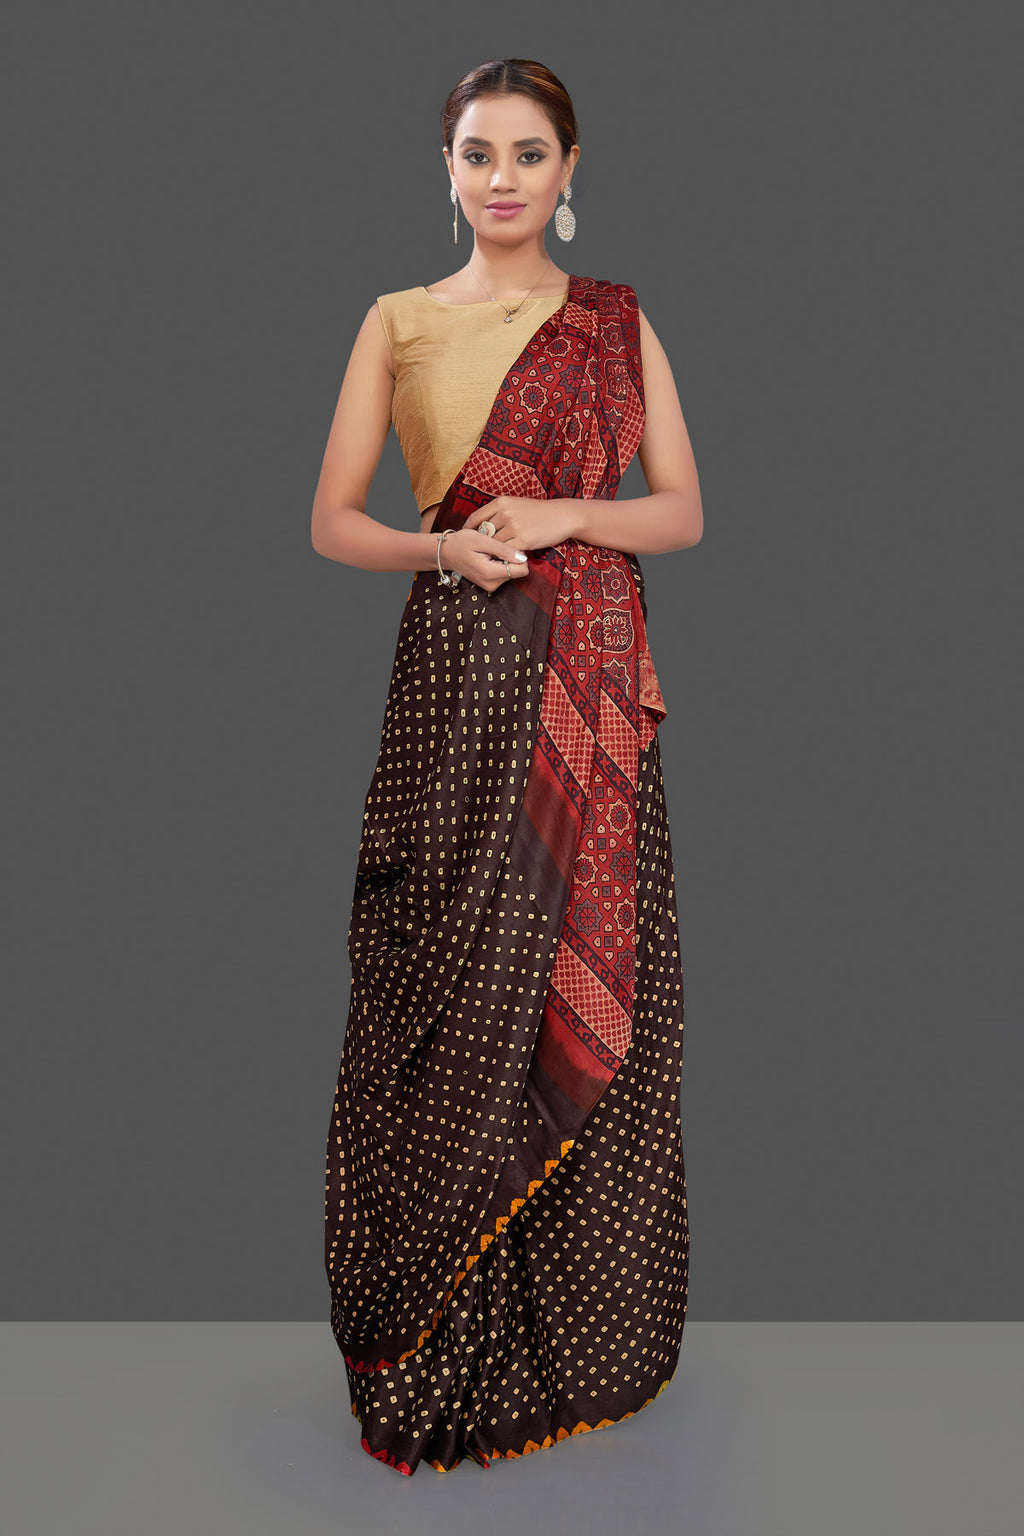 Buy gorgeous dark brown gajji silk Bandhej saree online in USA with Ajrakh pallu. Stand out at weddings and festive occasions with your tasteful choice in this gorgeous pure silk saris,  printed sarees, Bandhej saris, handwoven sarees from Pure Elegance Indian fashion store in USA. -full view